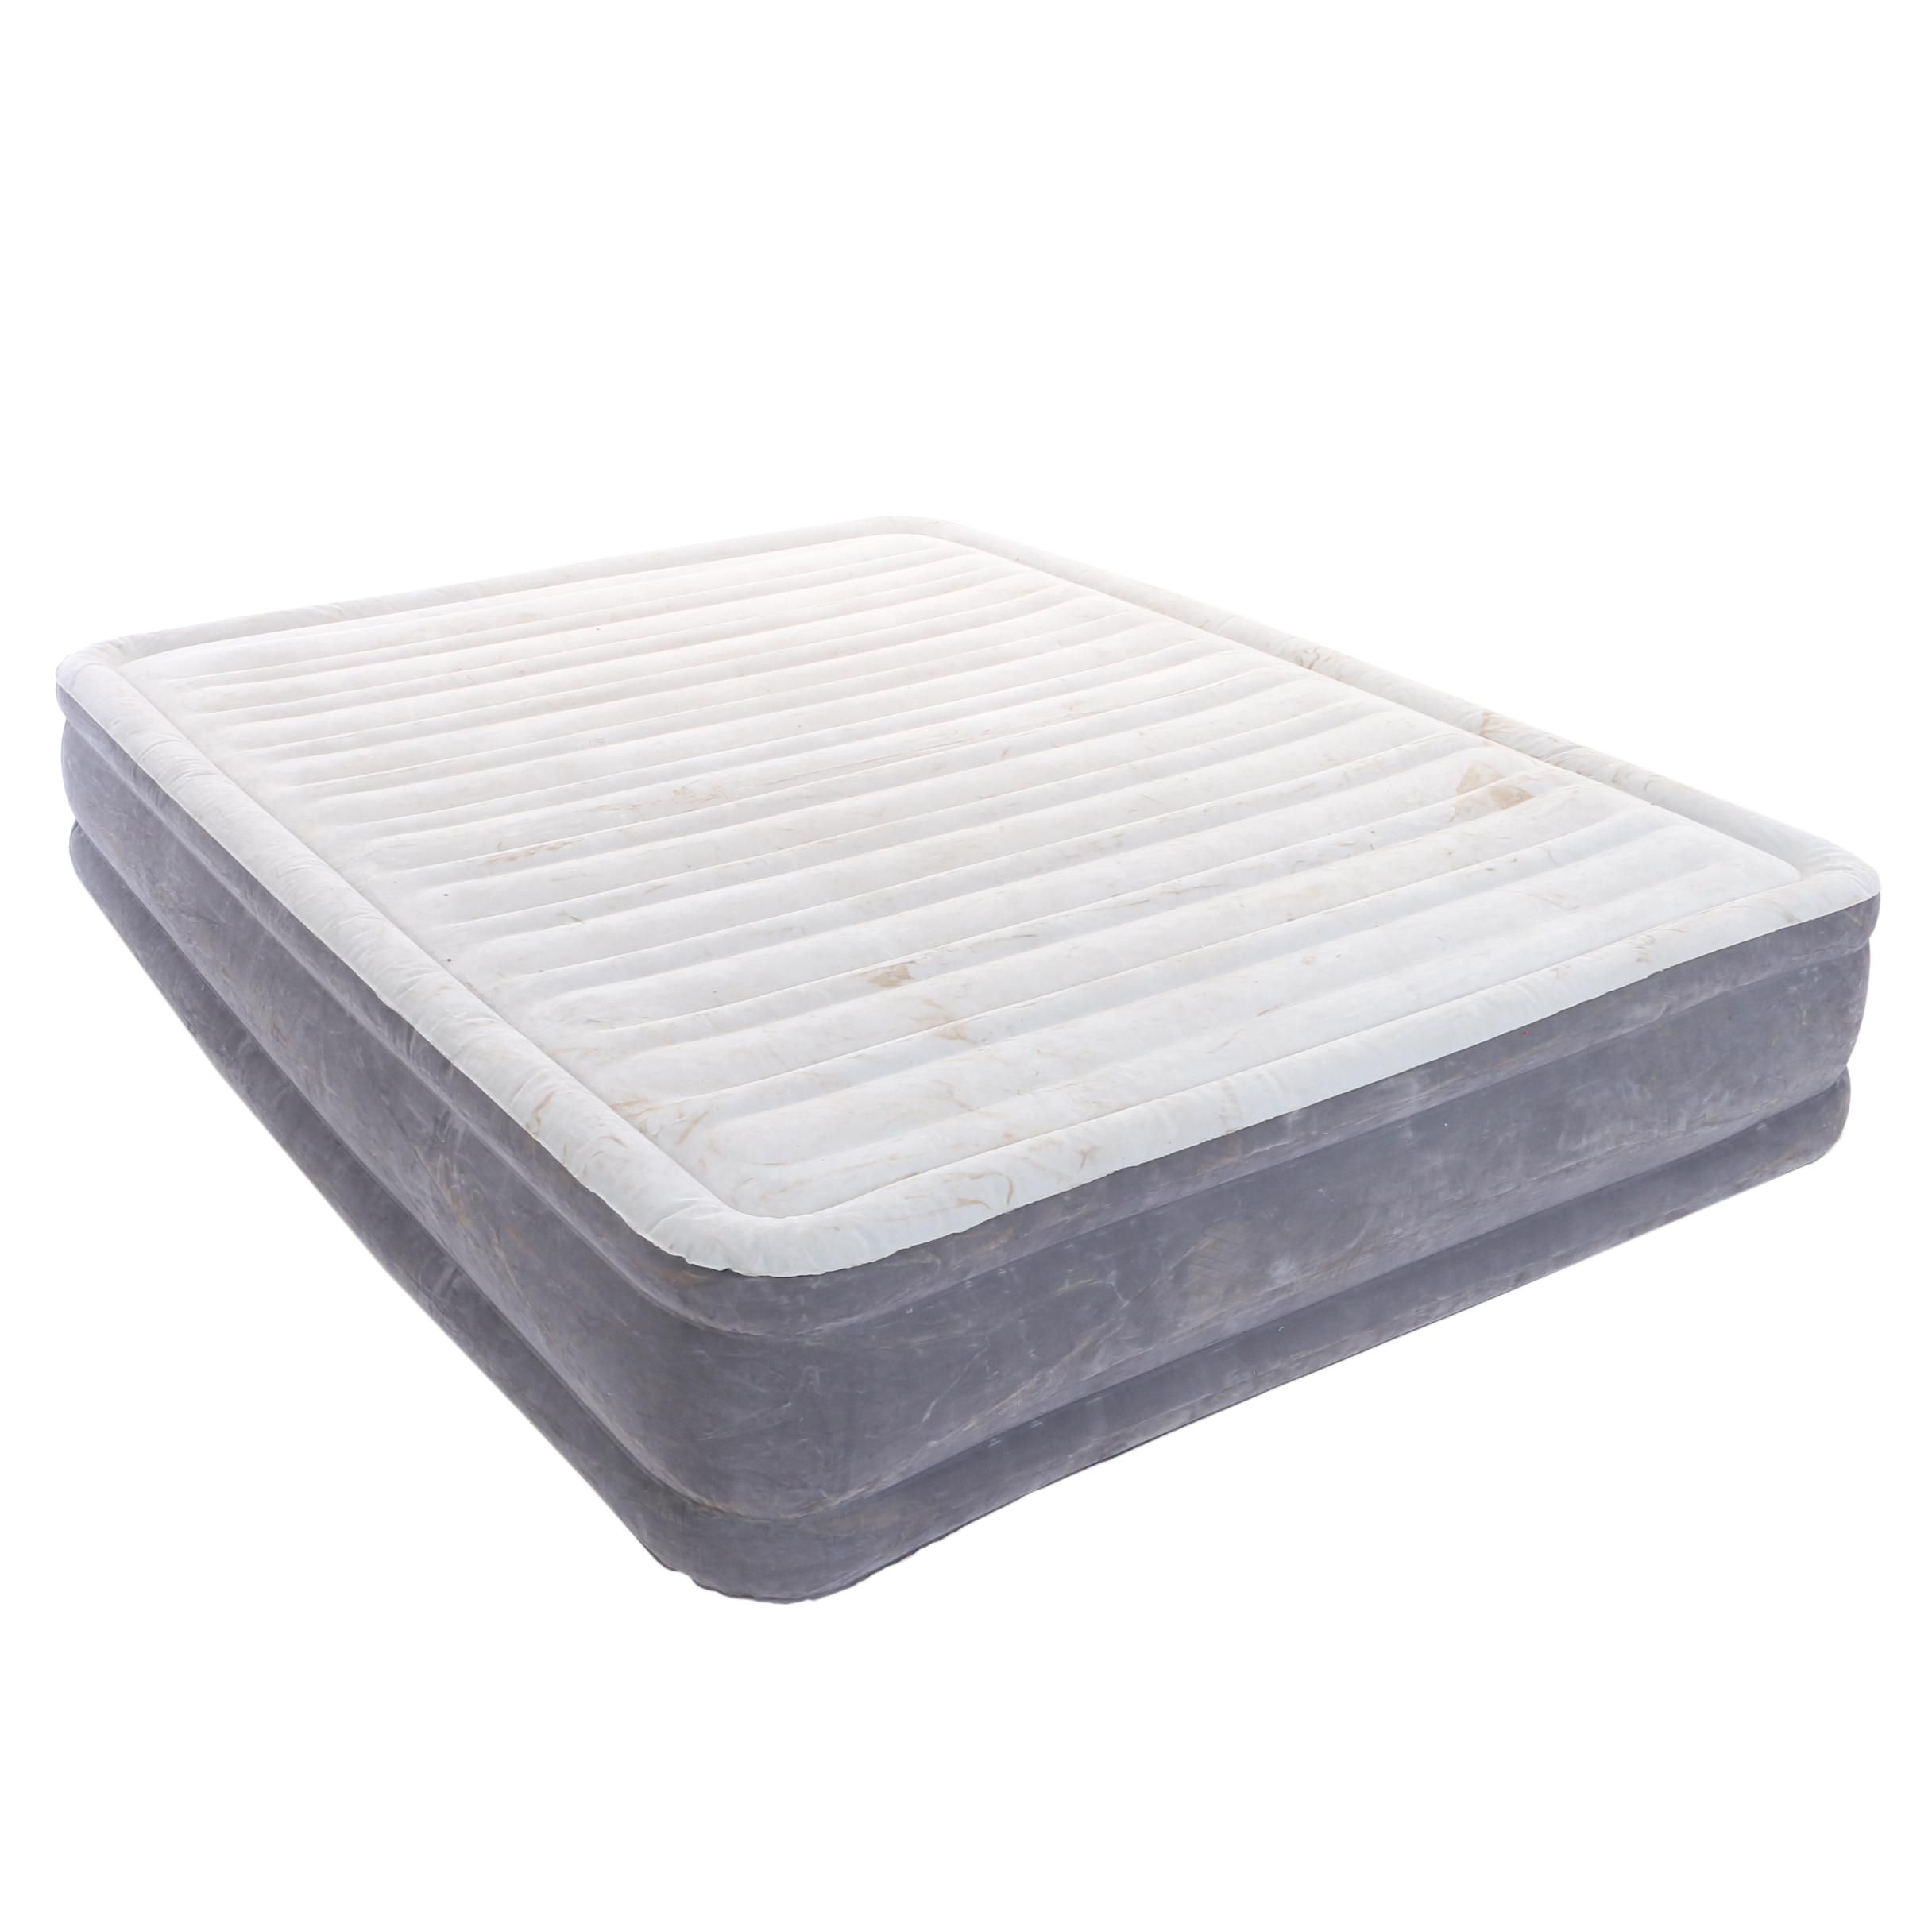 Intex Air Mattress with Built-In Pump